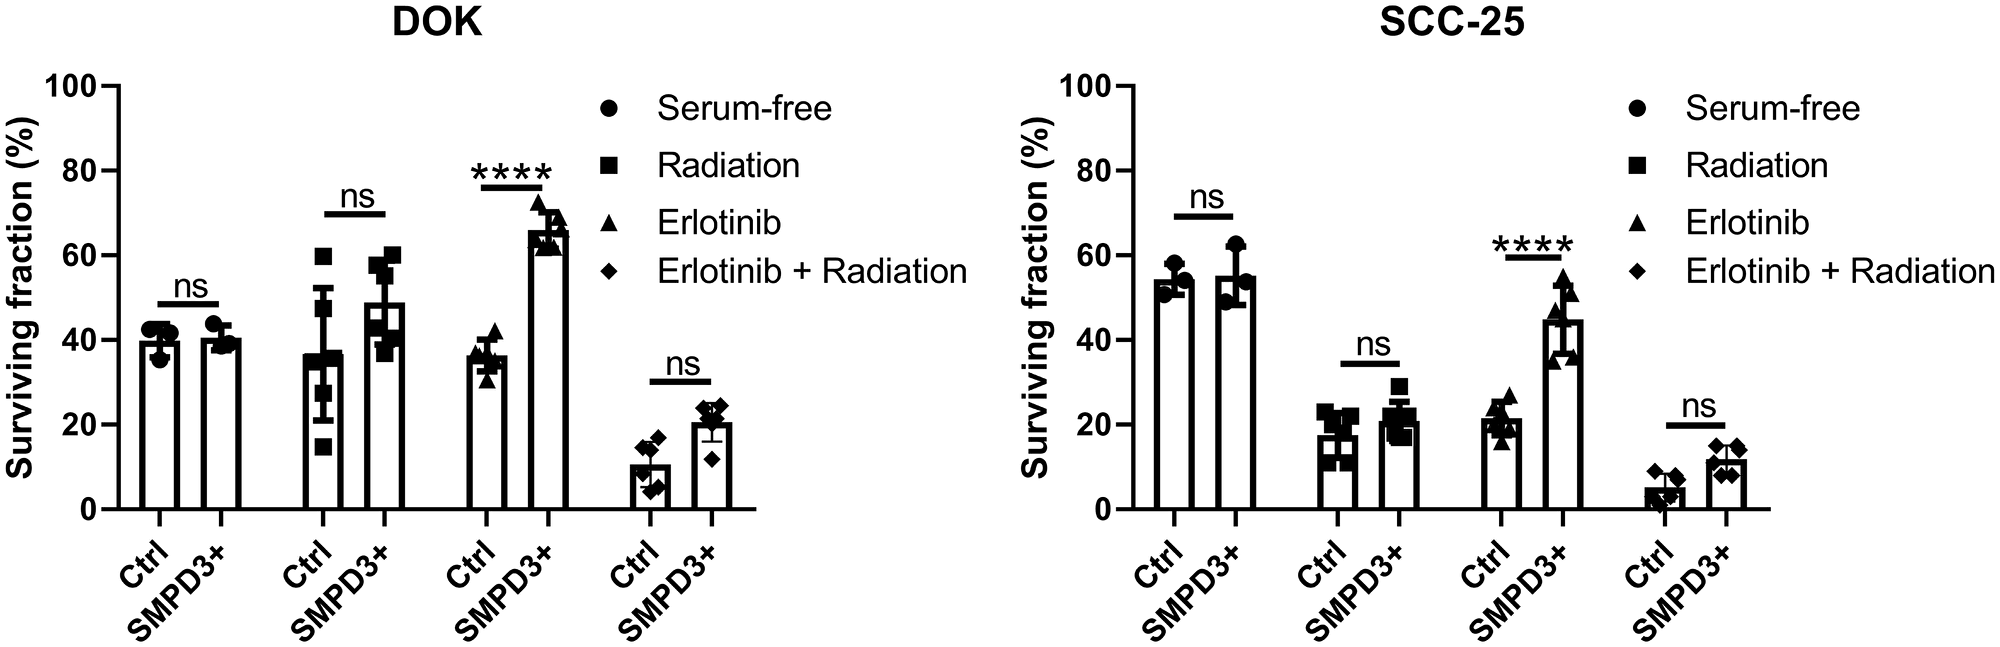 SMPD3 overexpression did not alter the response of oral dysplasia and cancer cell lines to serum starvation or radiation but improved resistance to the EGFR inhibitor erlotinib.